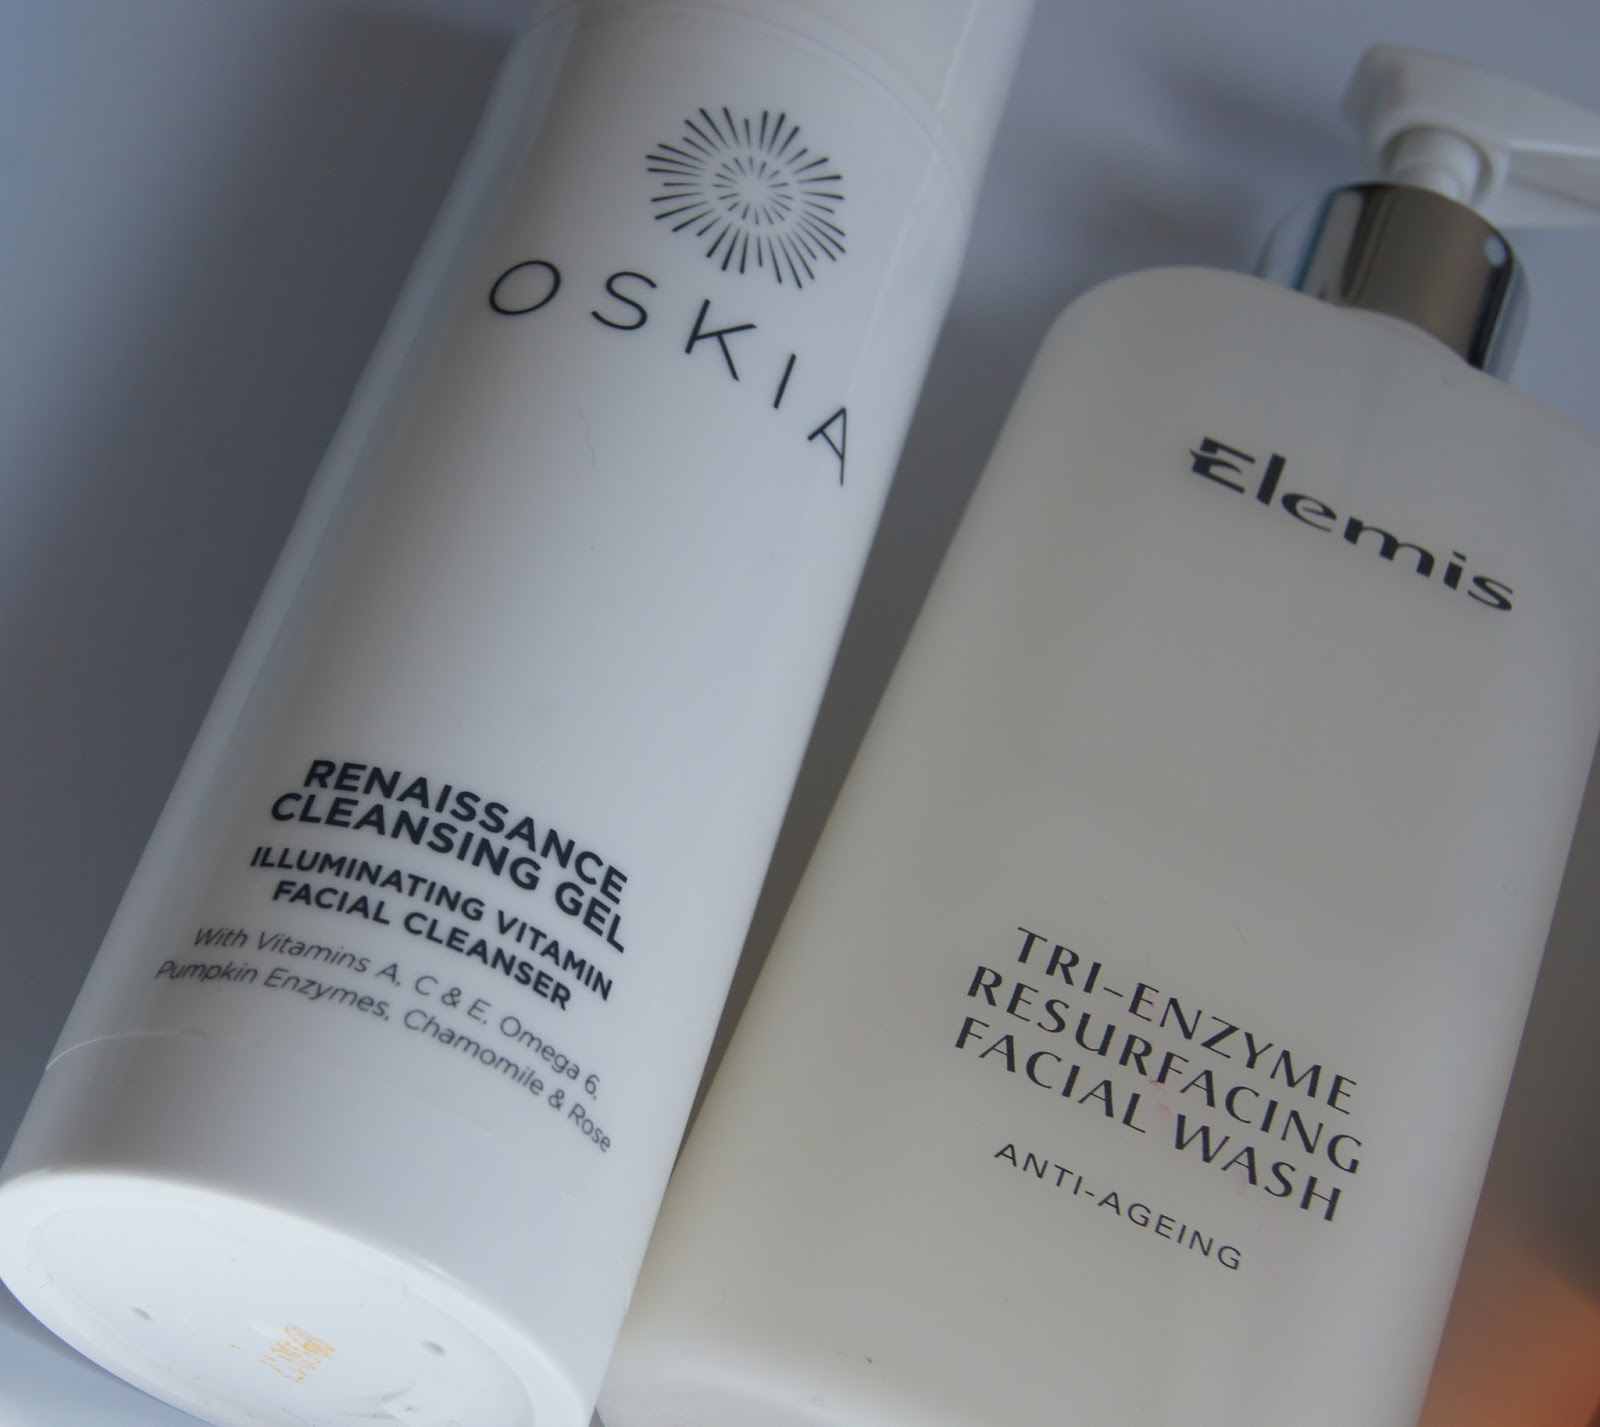 Oskia renaissance cleansing gel review, Elemis tri-enzyme resurfacing facial wash